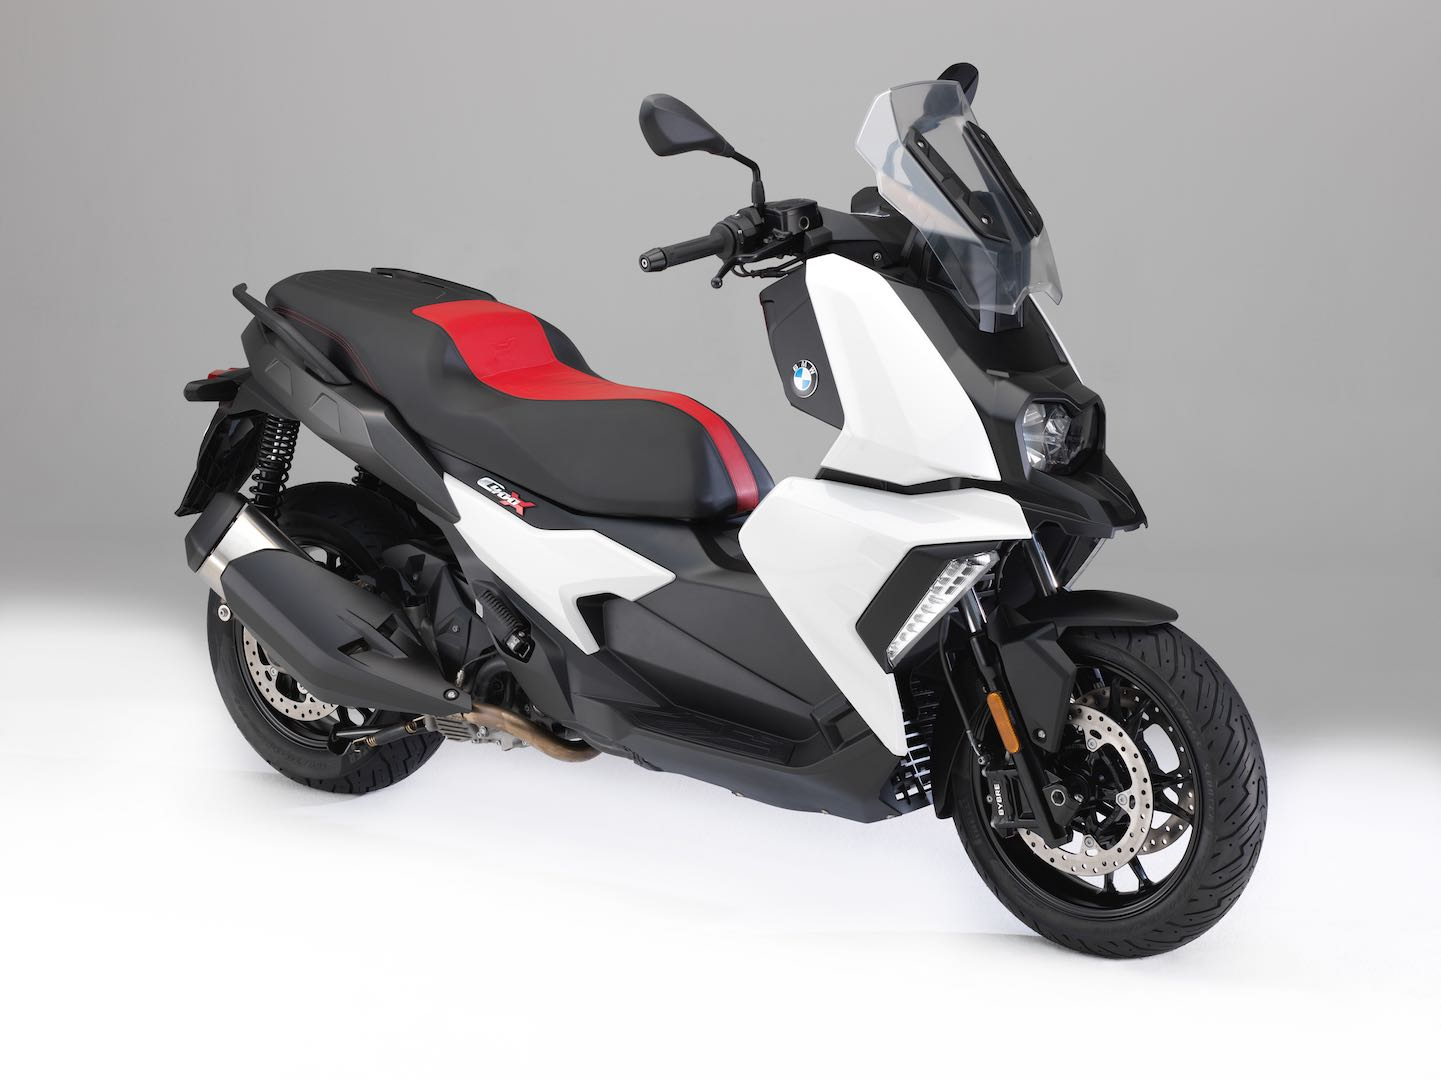 2018 BMW C 400 X Scooter color options